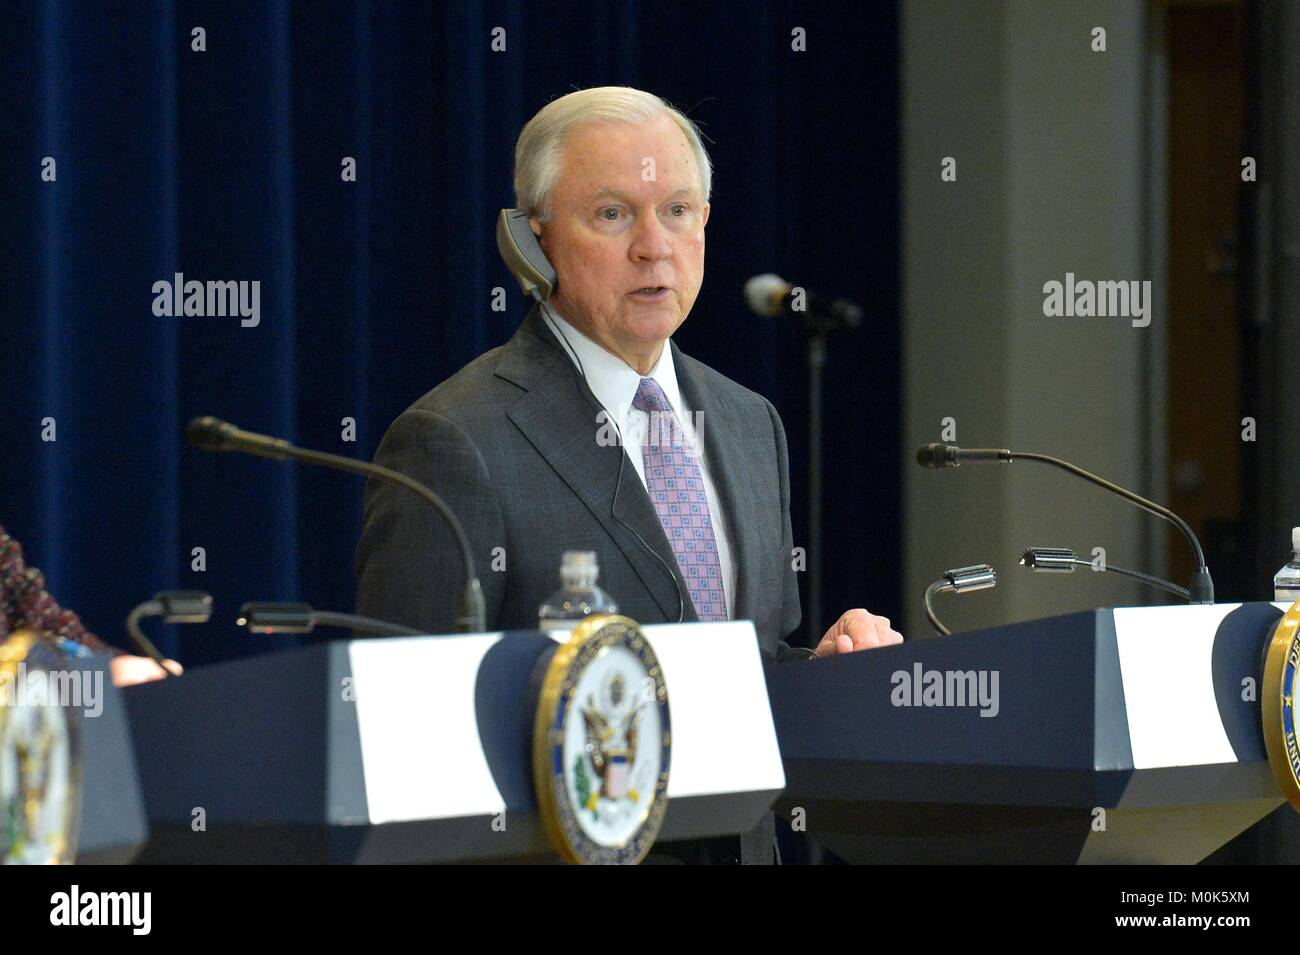 U.S. Attorney General Jeff Sessions speaks during the second U.S.-Mexico Strategic Dialogue on Disrupting Transnational - Stock Image